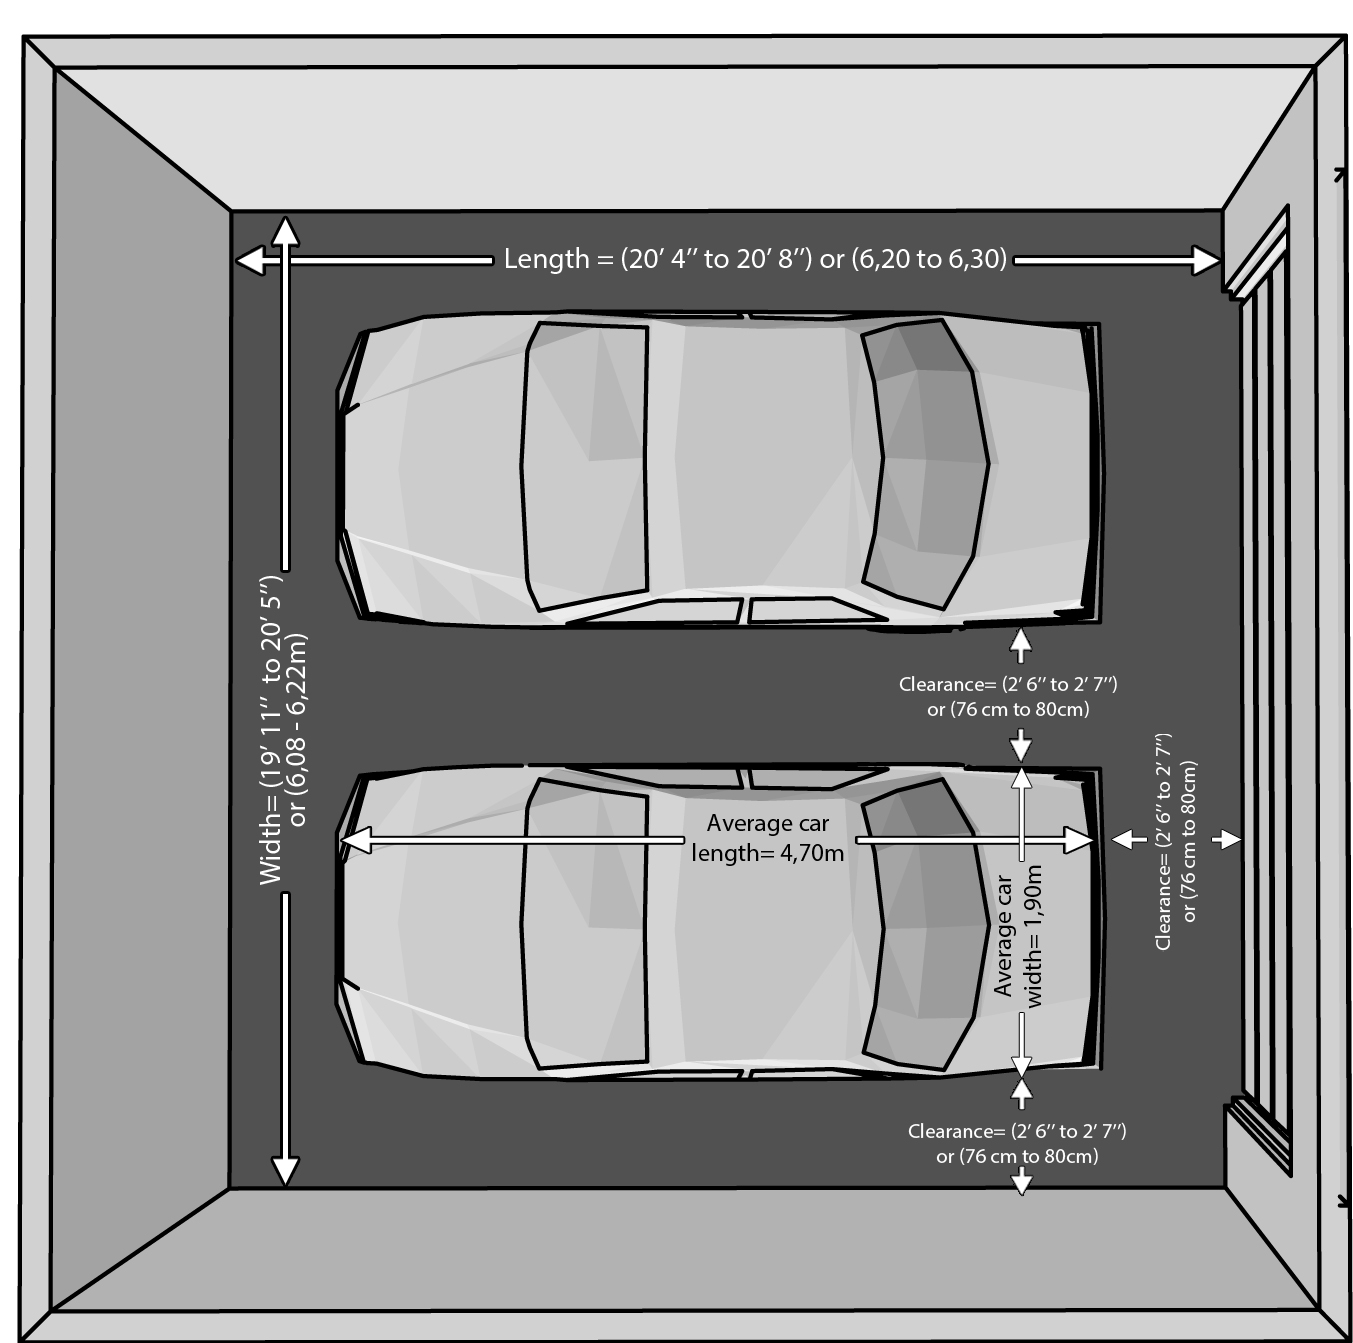 2 Car Garage Dimensions The Dimensions Of An One Car And A Two Car Garage